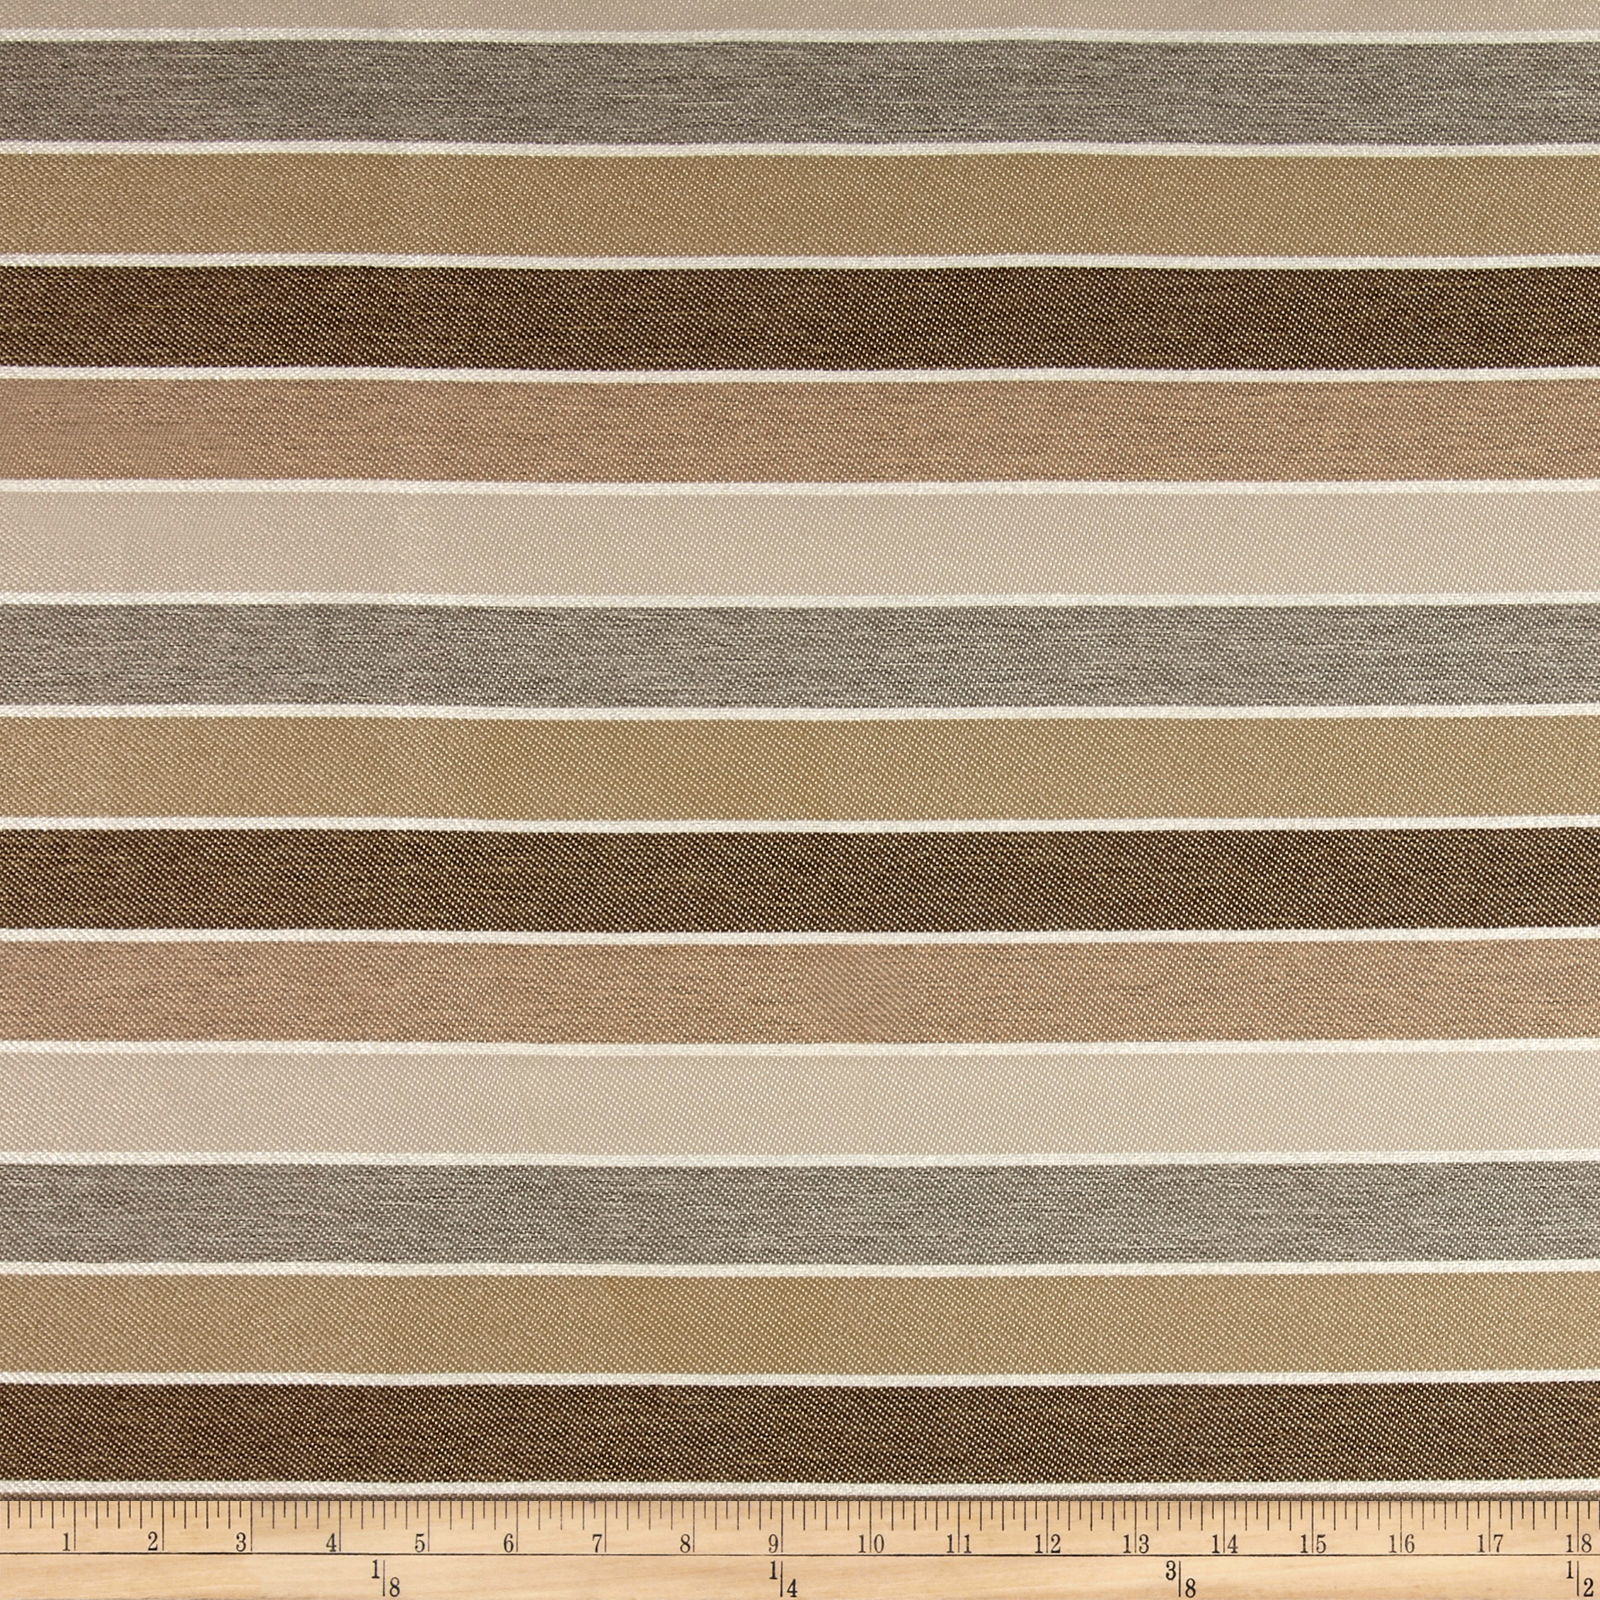 Covington Outdoor Solution Dyed Raceway Travertine Fabric